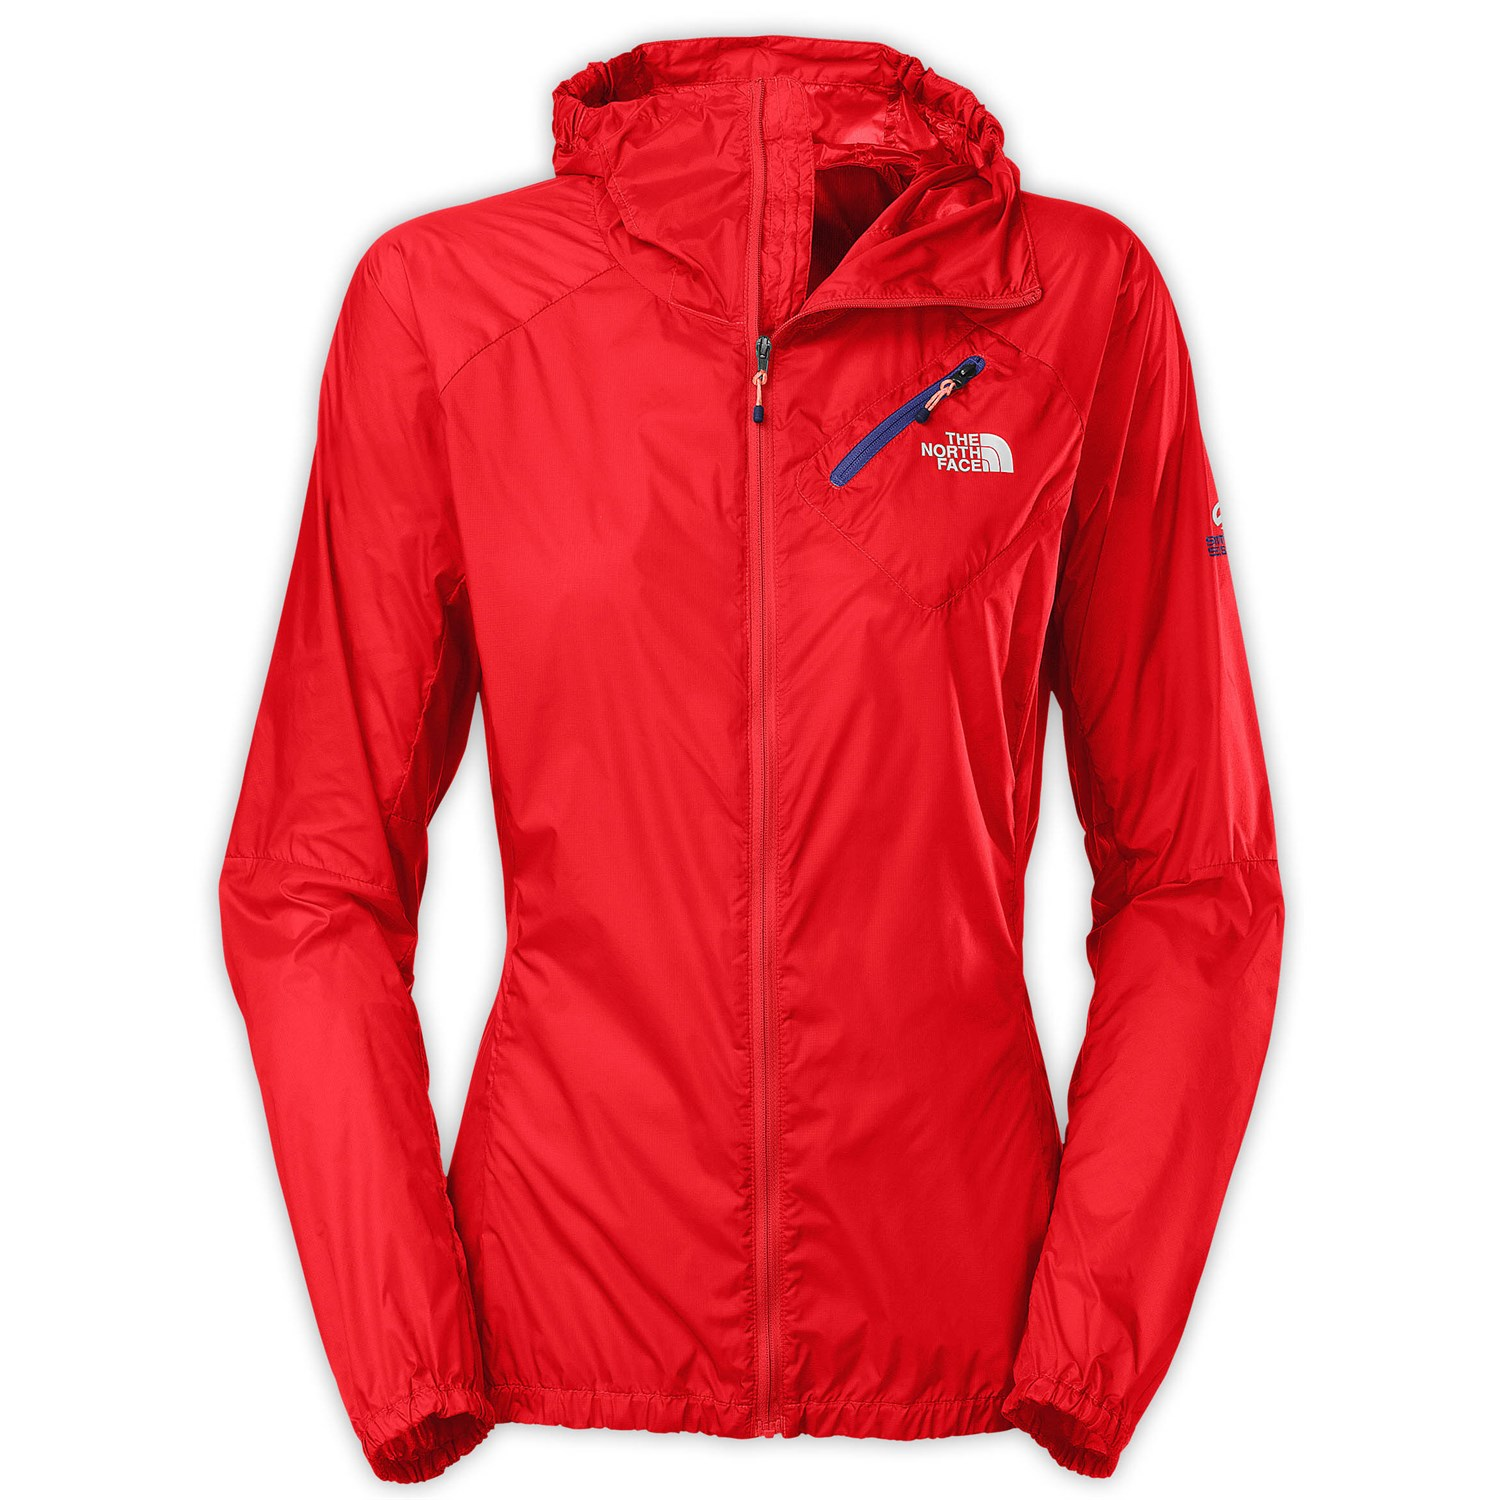 7ee9d9b180 north face red jacket for women